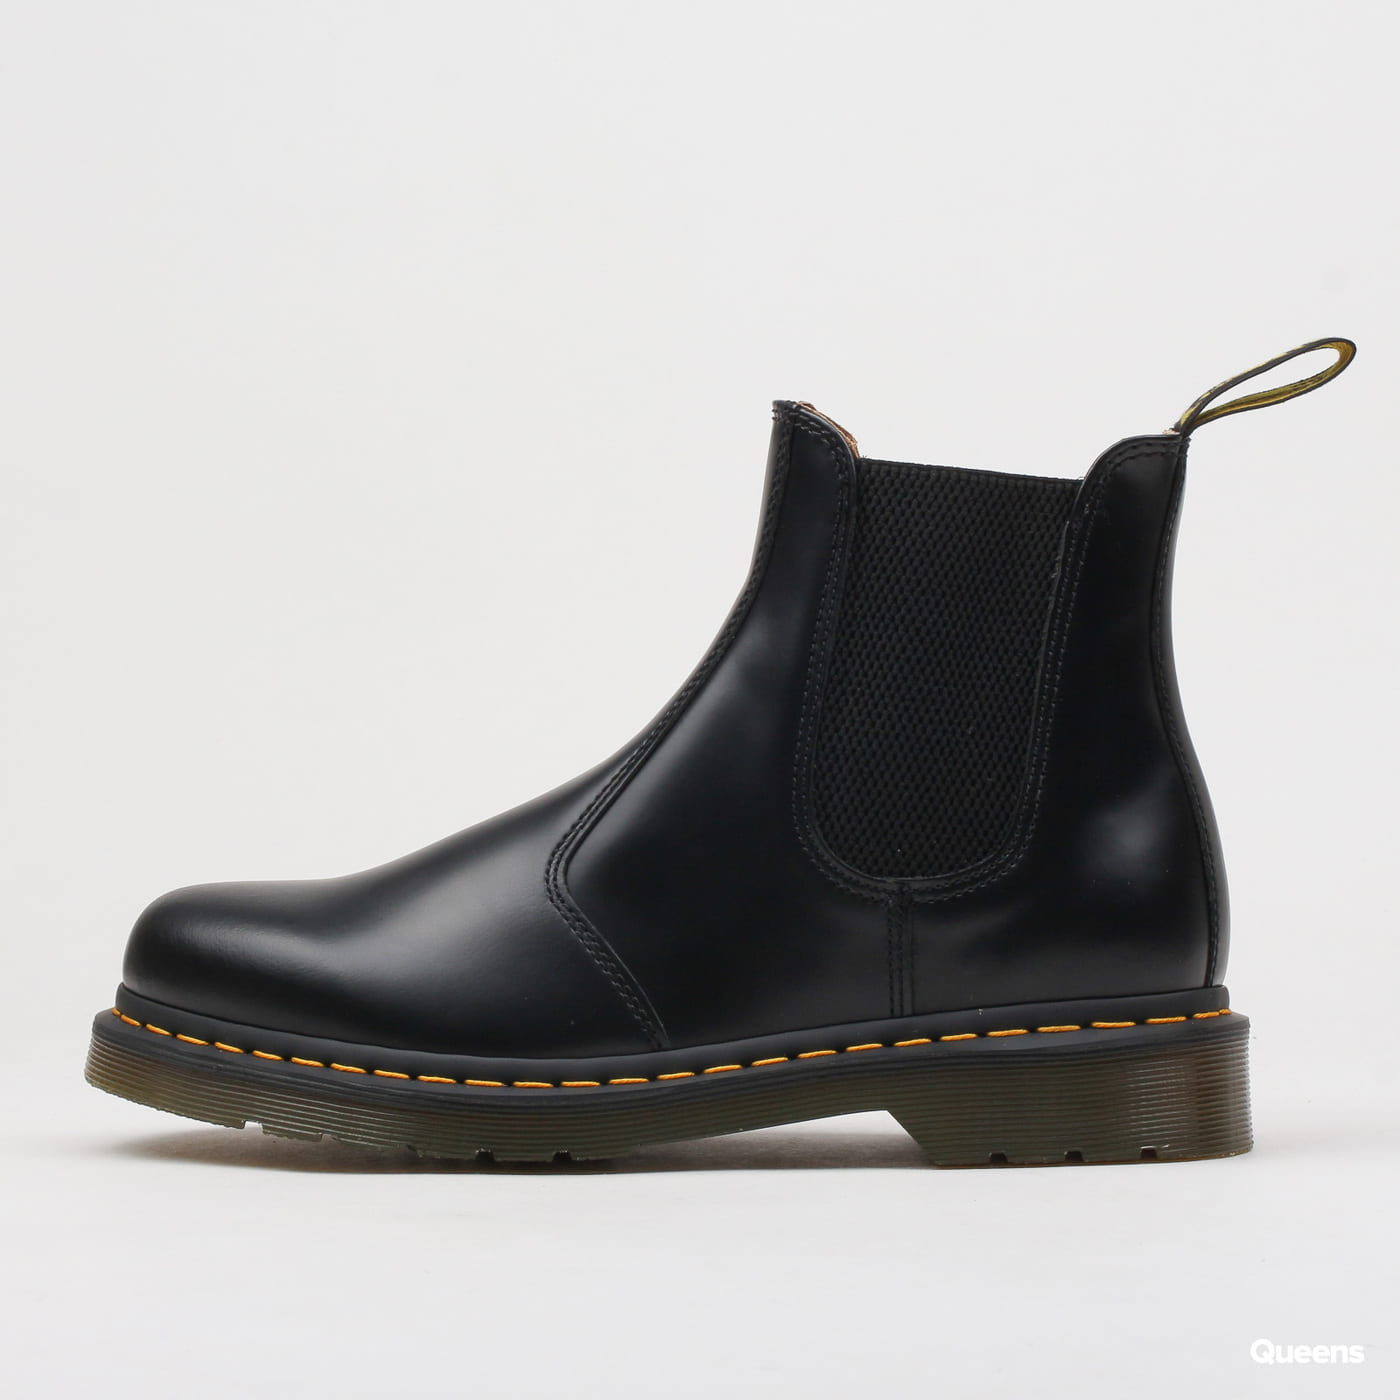 Dr. Martens 2976 YS black smooth